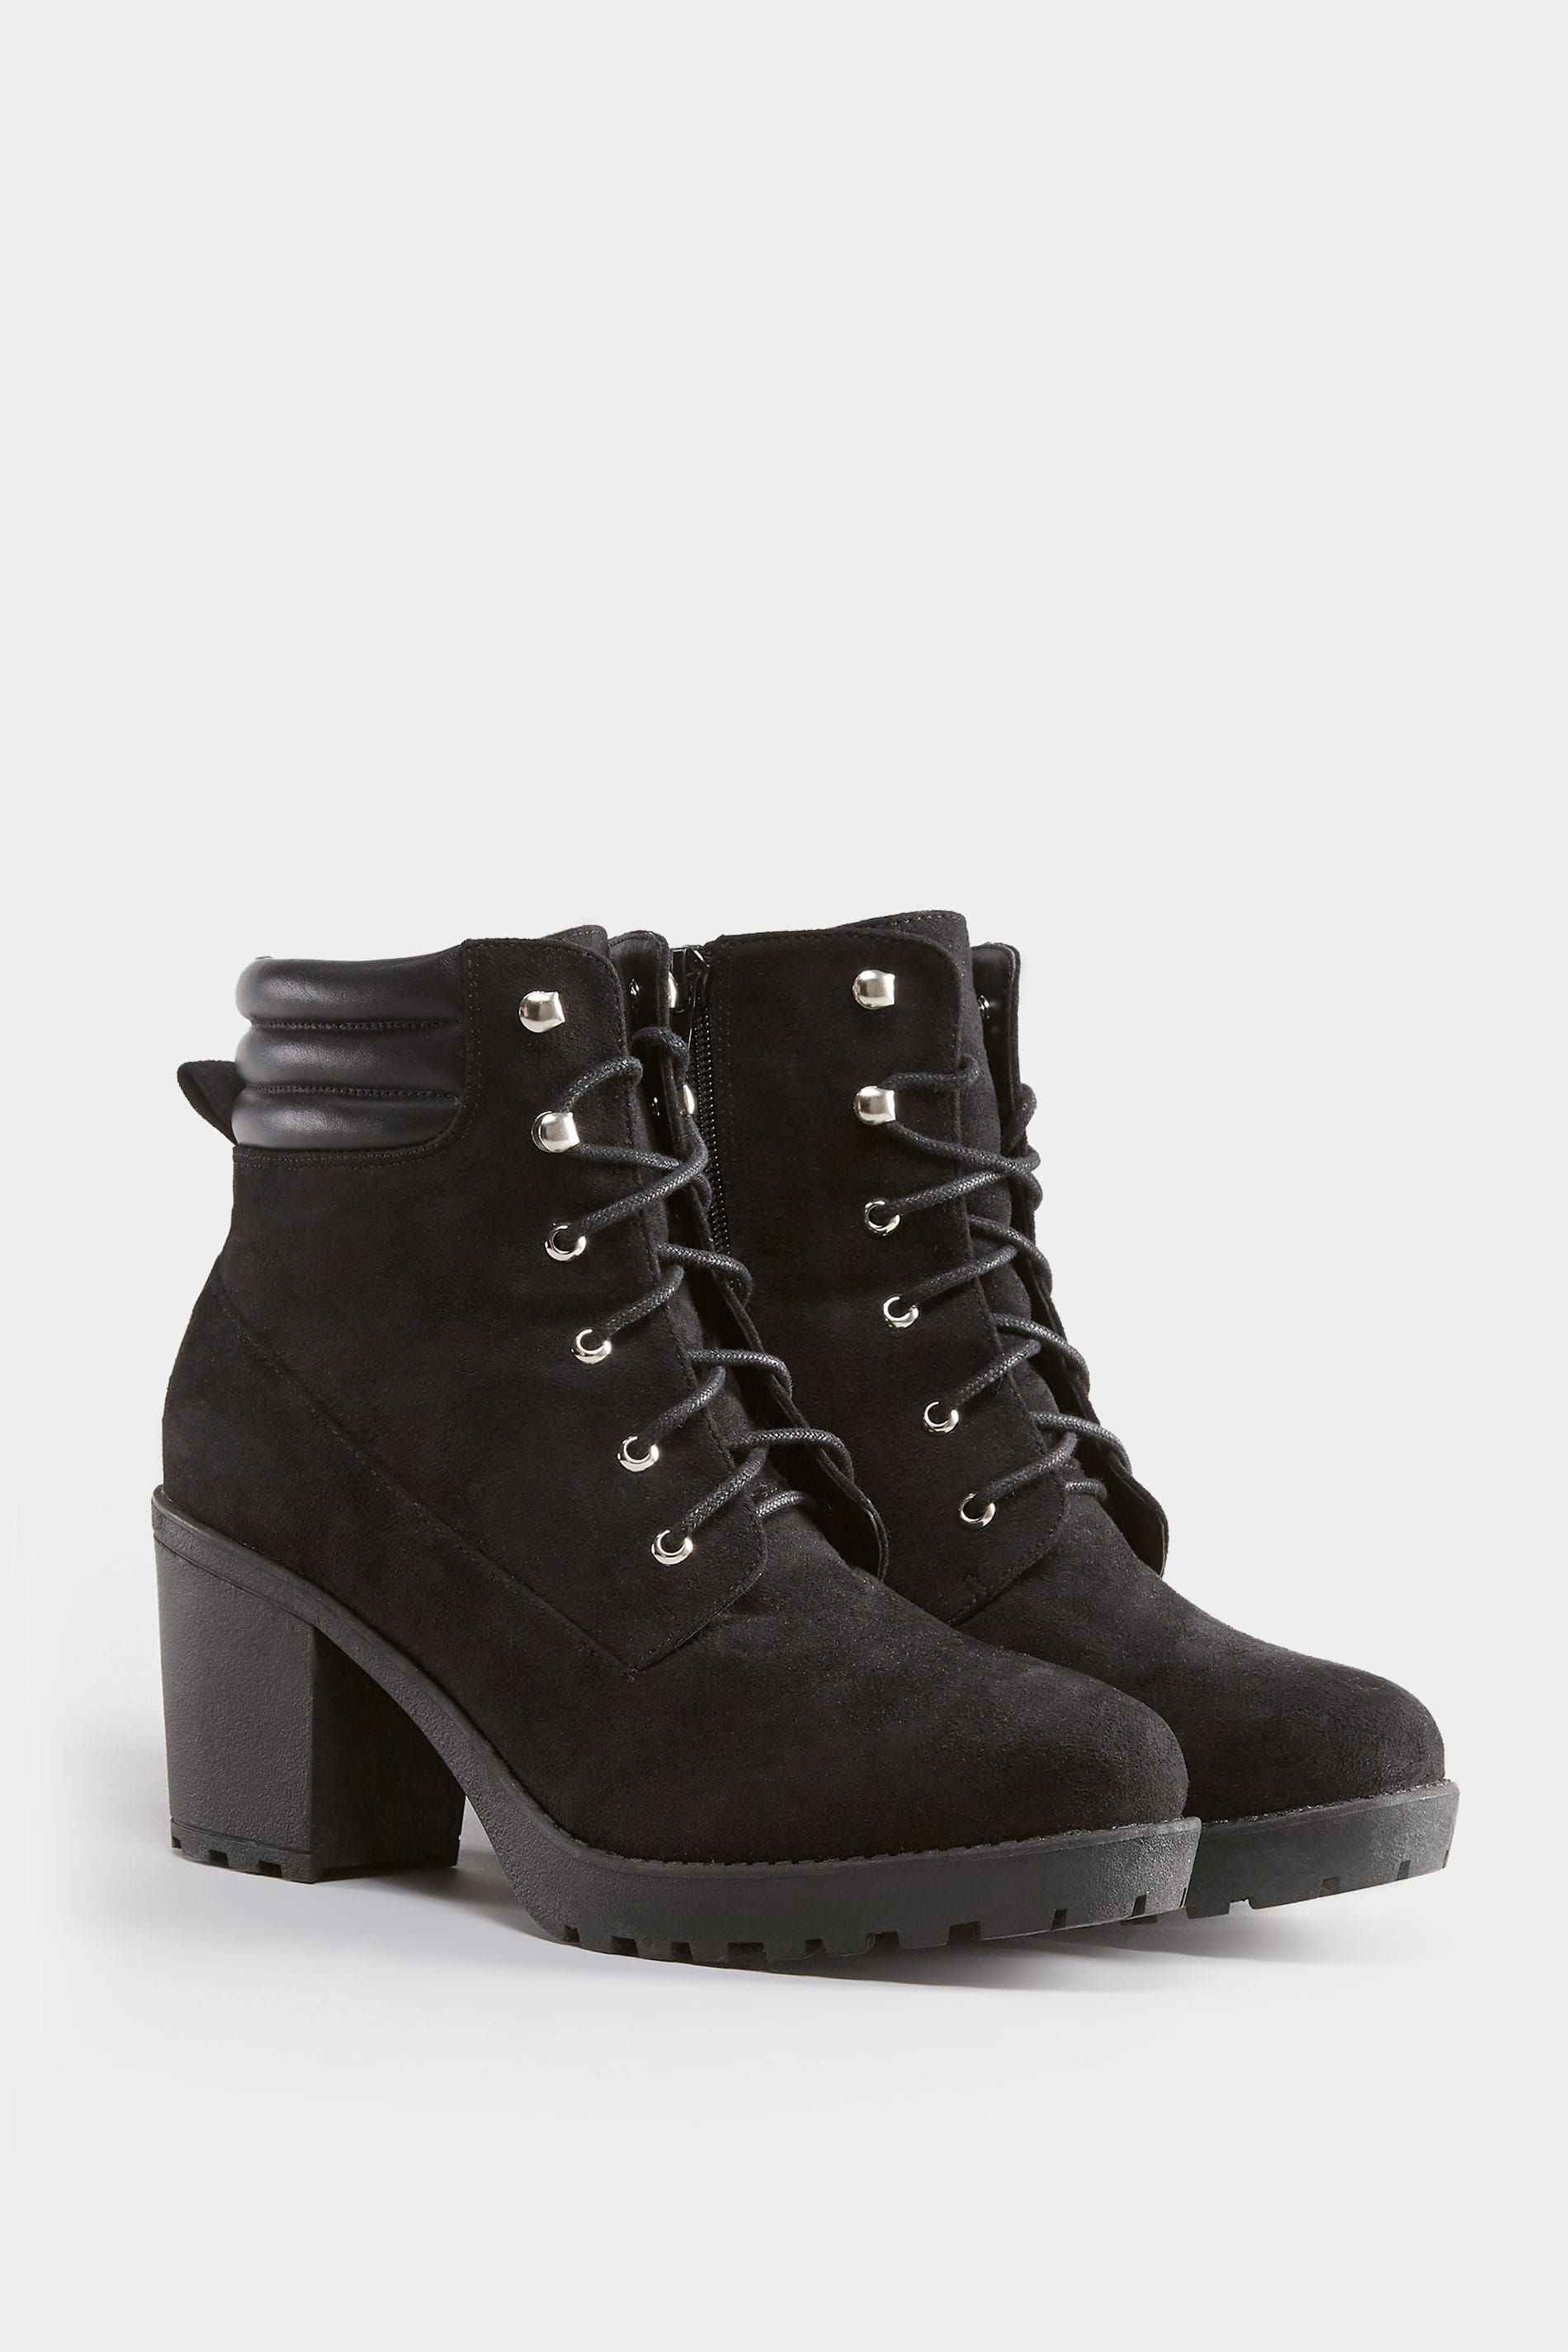 6254002055 Black Lace Up Heeled Ankle Boot In EEE Fit, Wide Fitting Sizes 4EEE to 10EEE